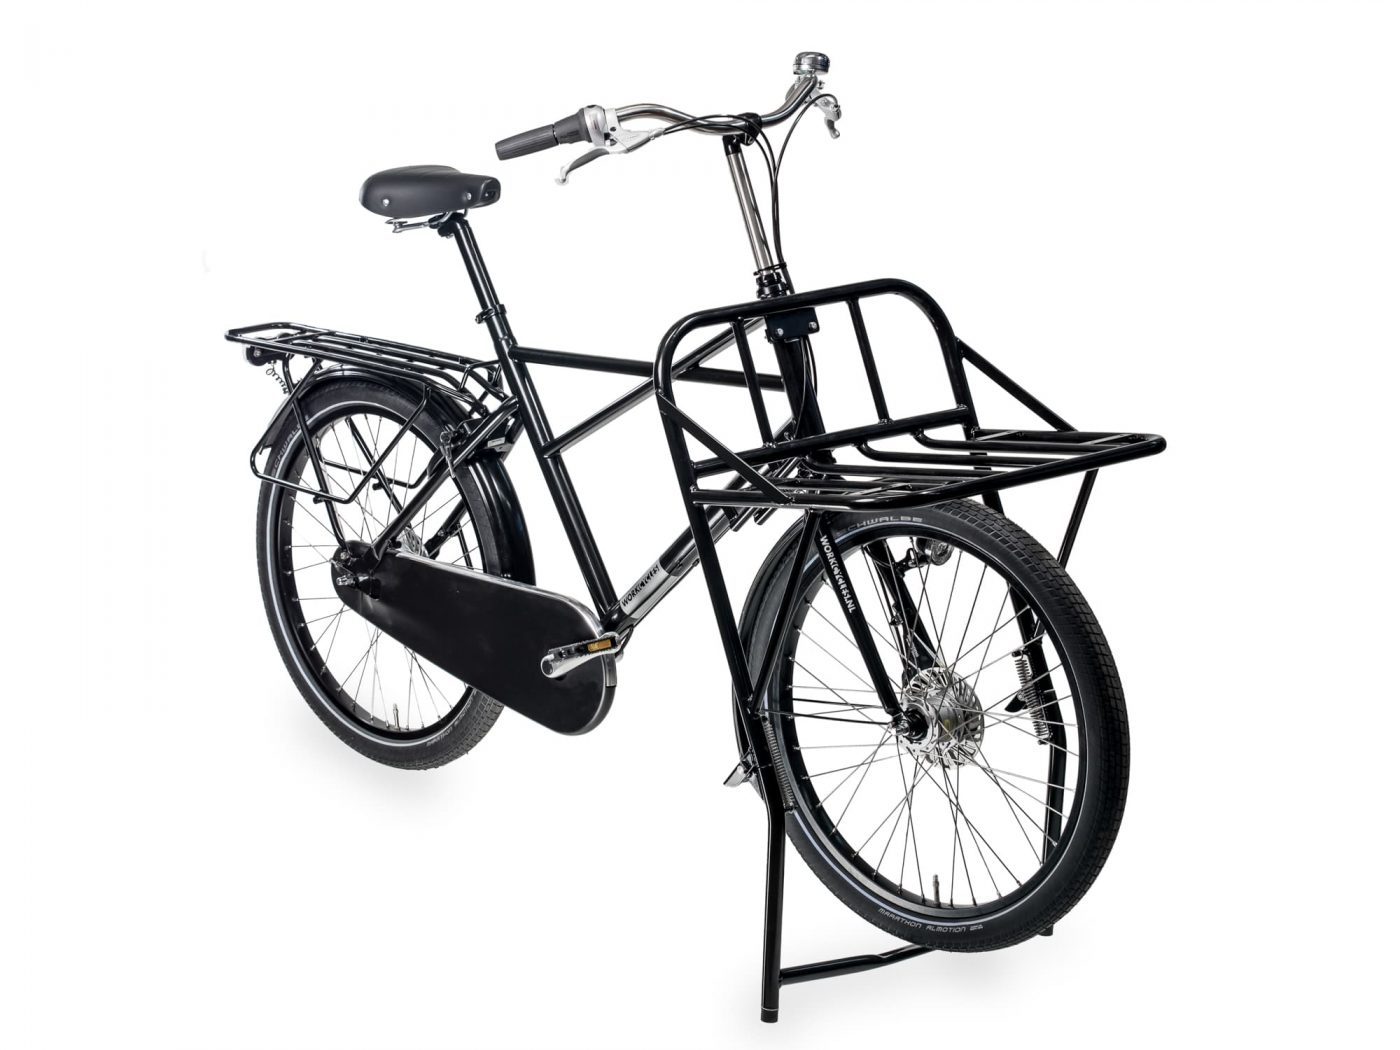 Plenty of cargo space with this full-on men's cross frame delivery machine. On the front our 'one and only' Massive Rack and on the back a long rear carrier. Carry anything and everything with this full-on delivery machine.